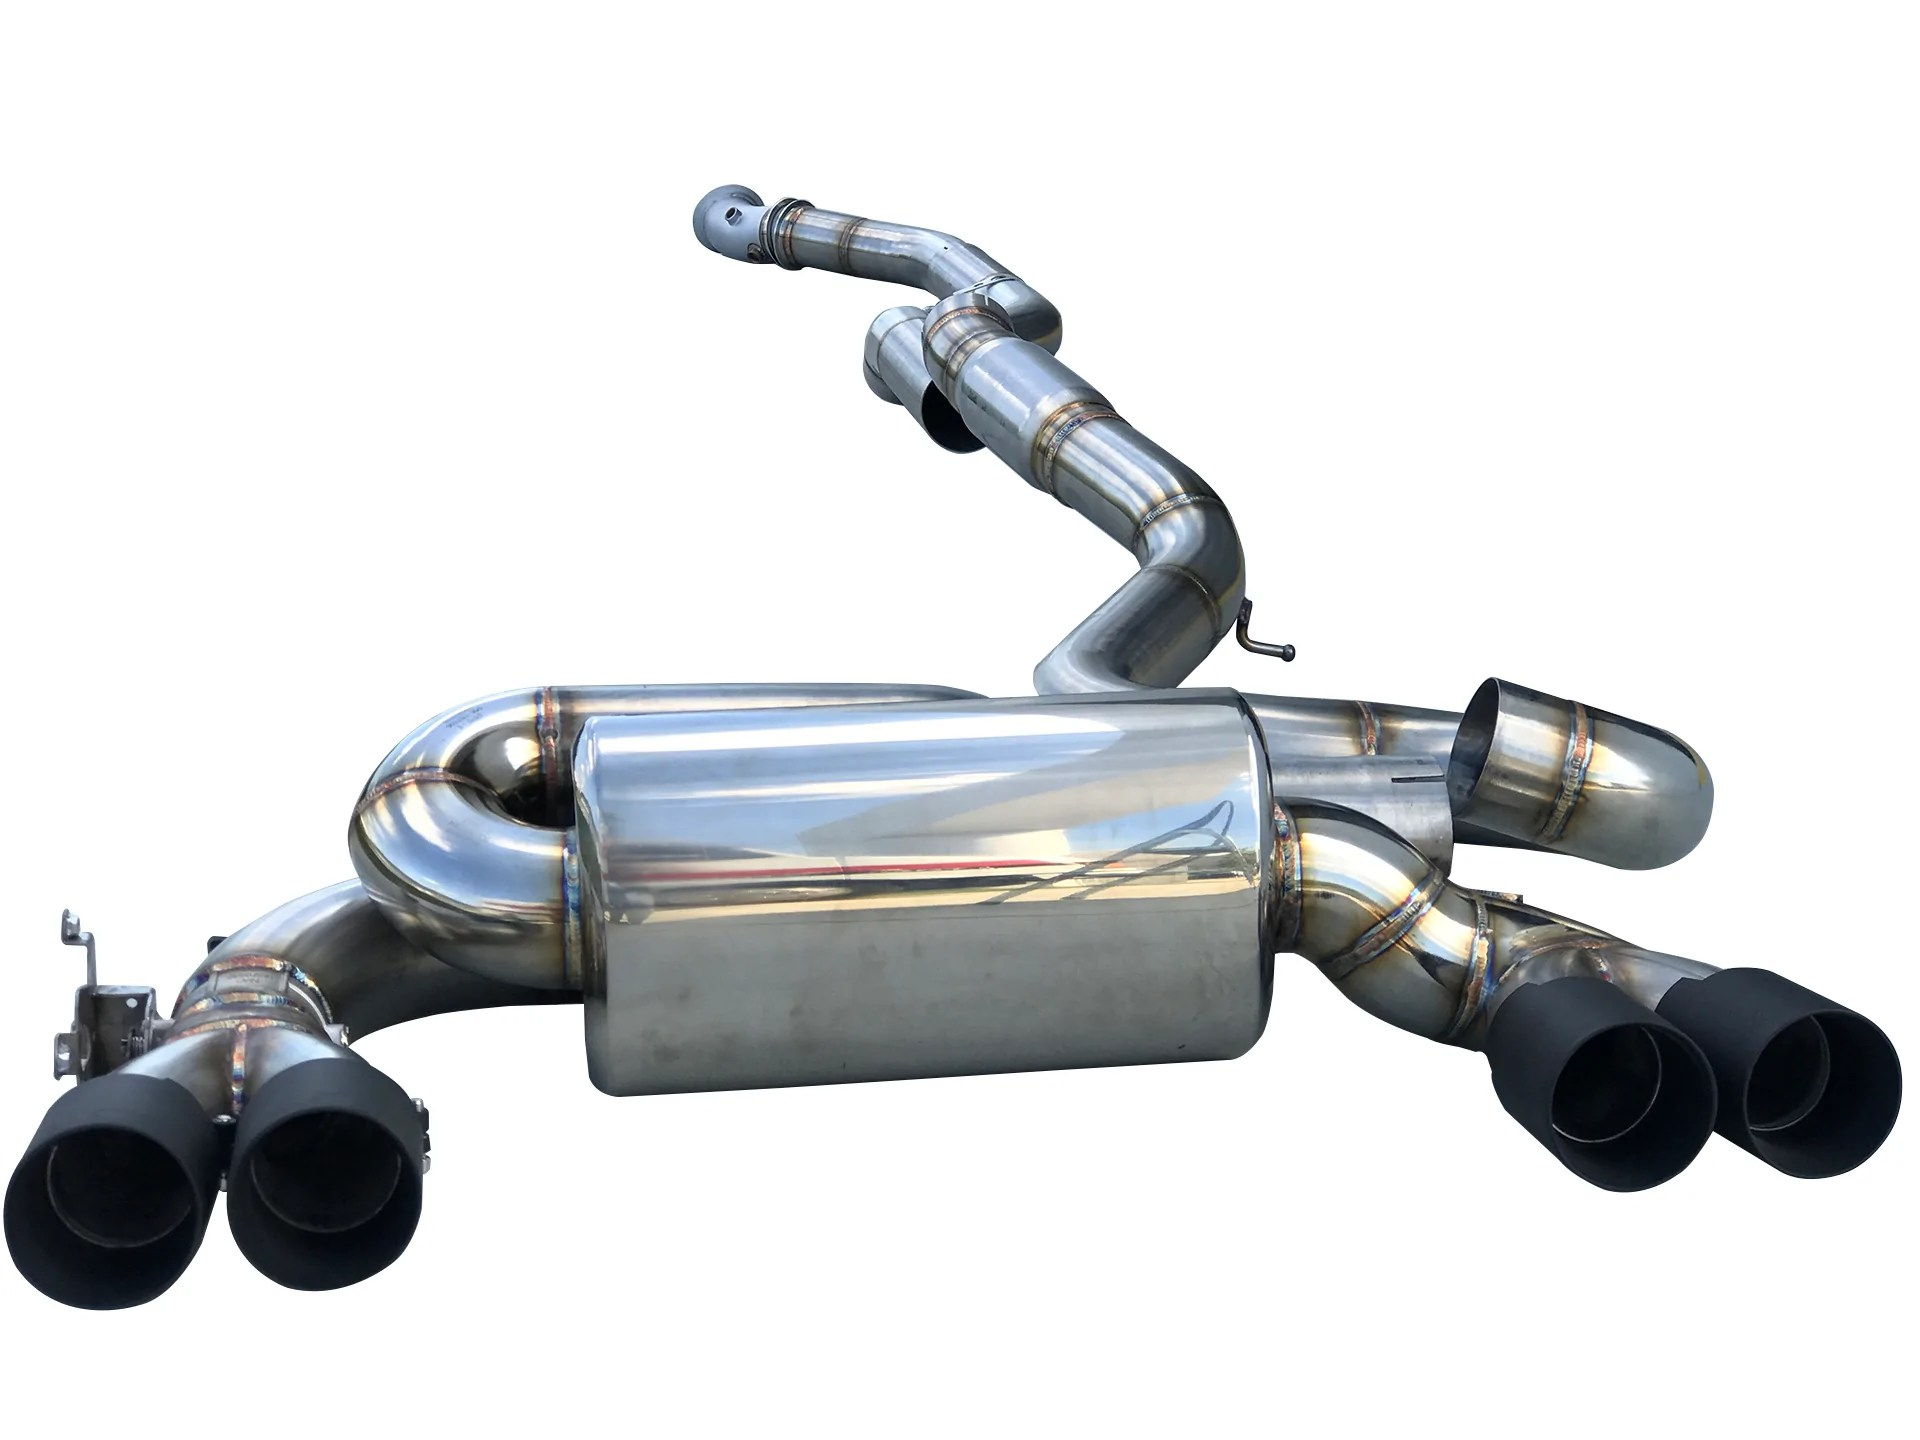 f87 m2 signature turbo back exhaust system